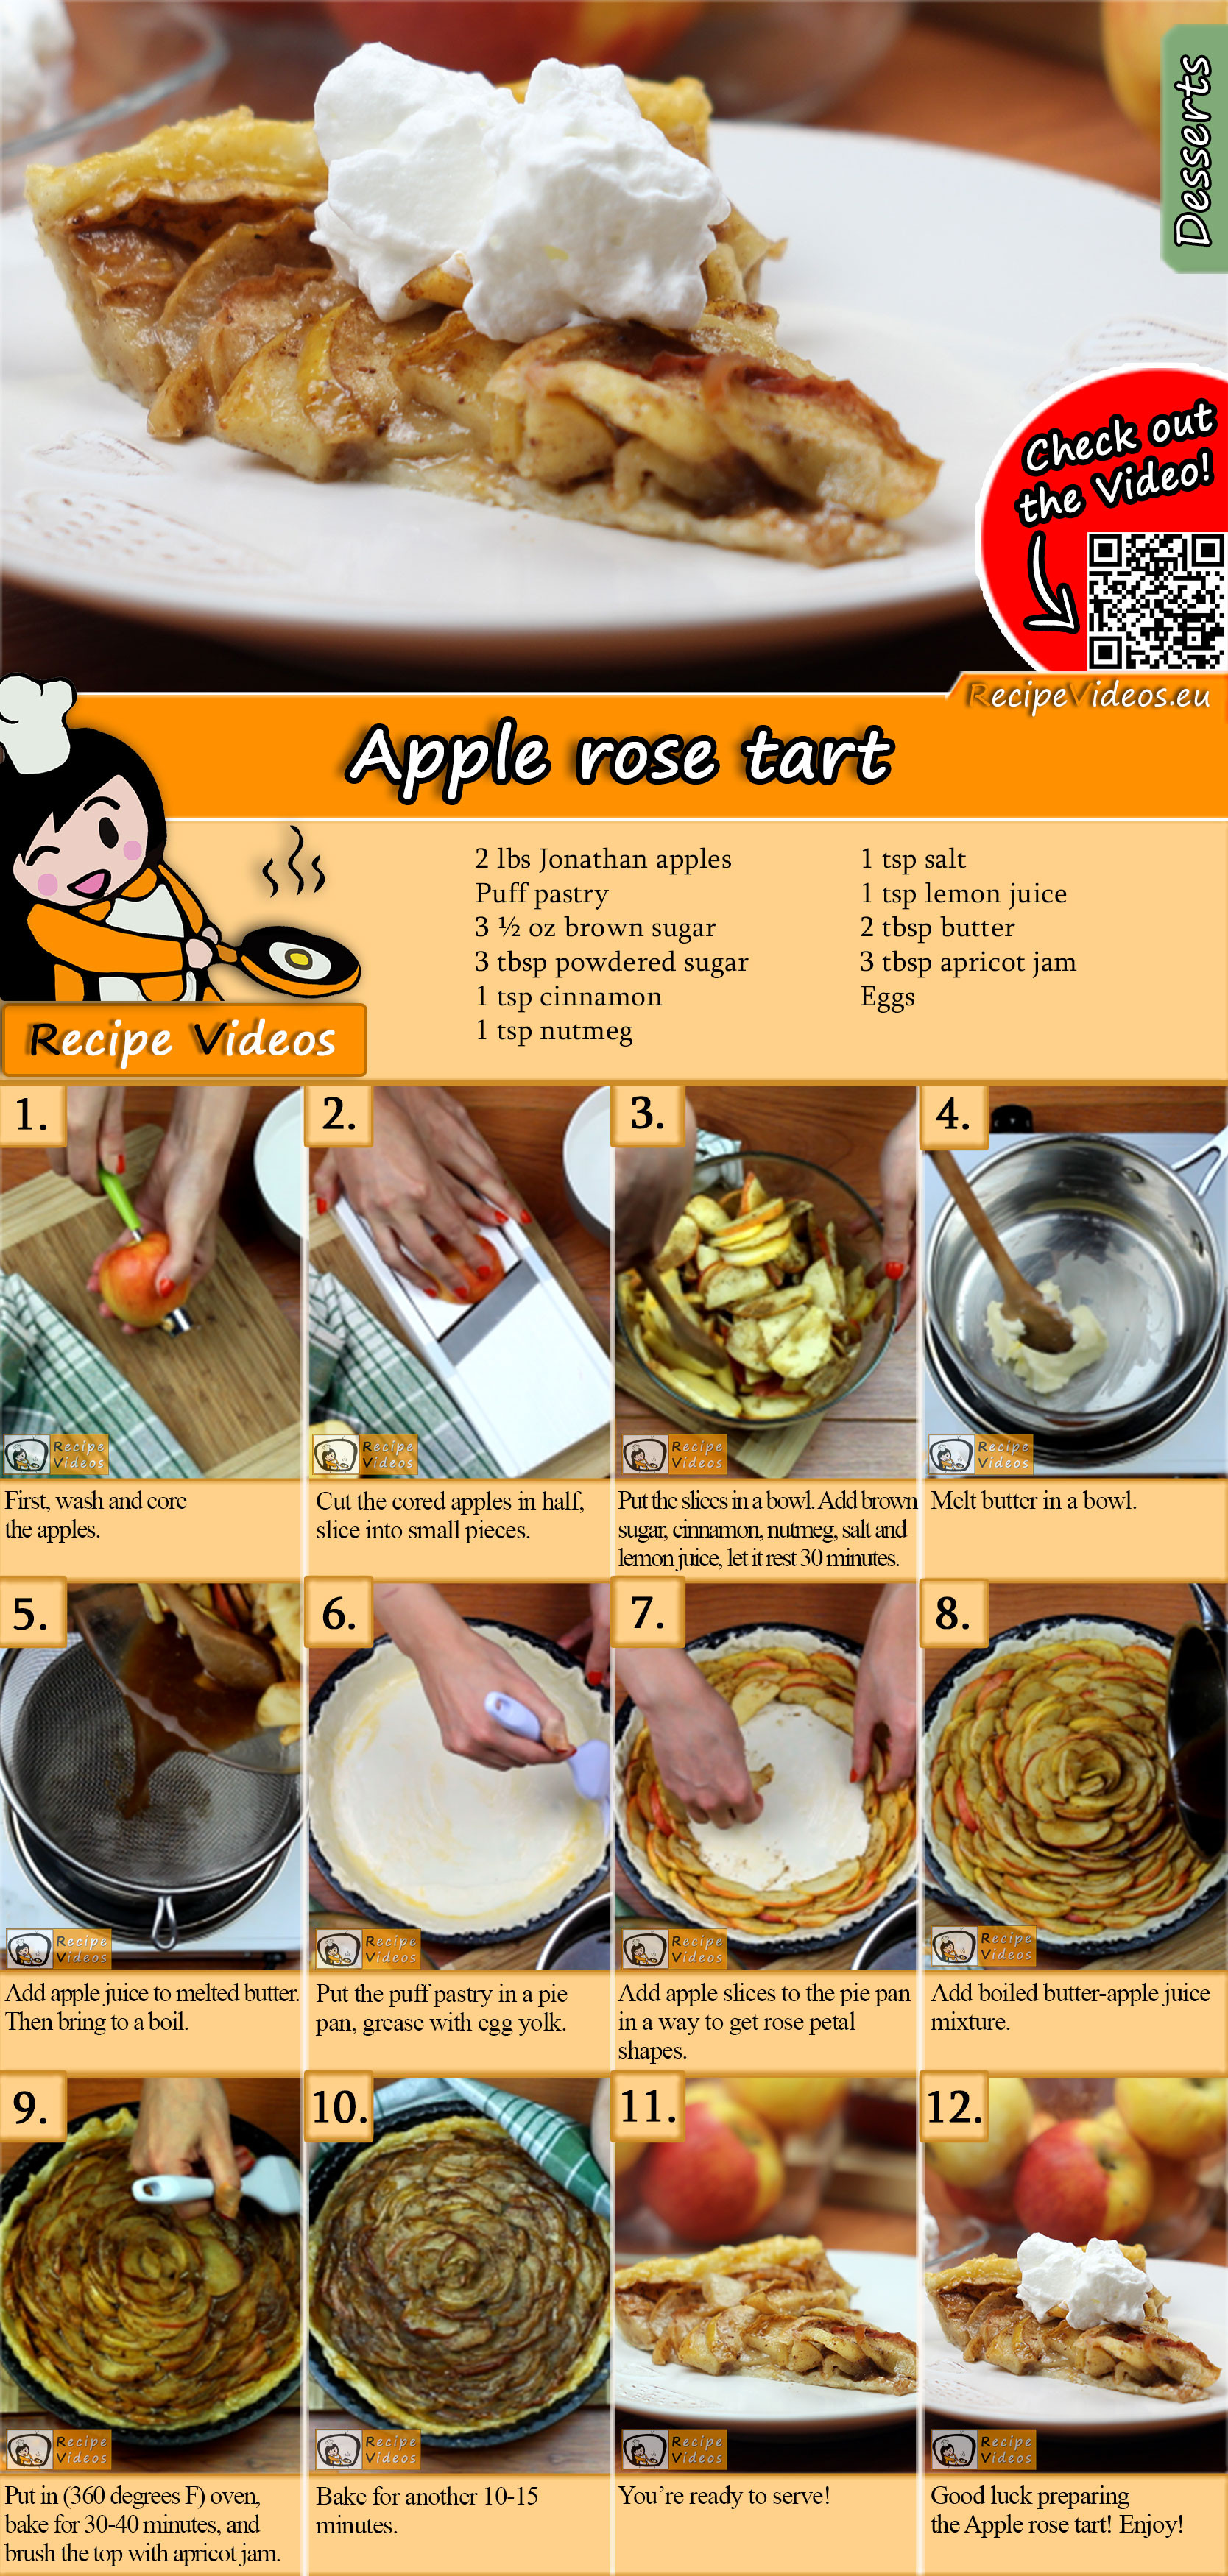 Apple rose tart recipe with video